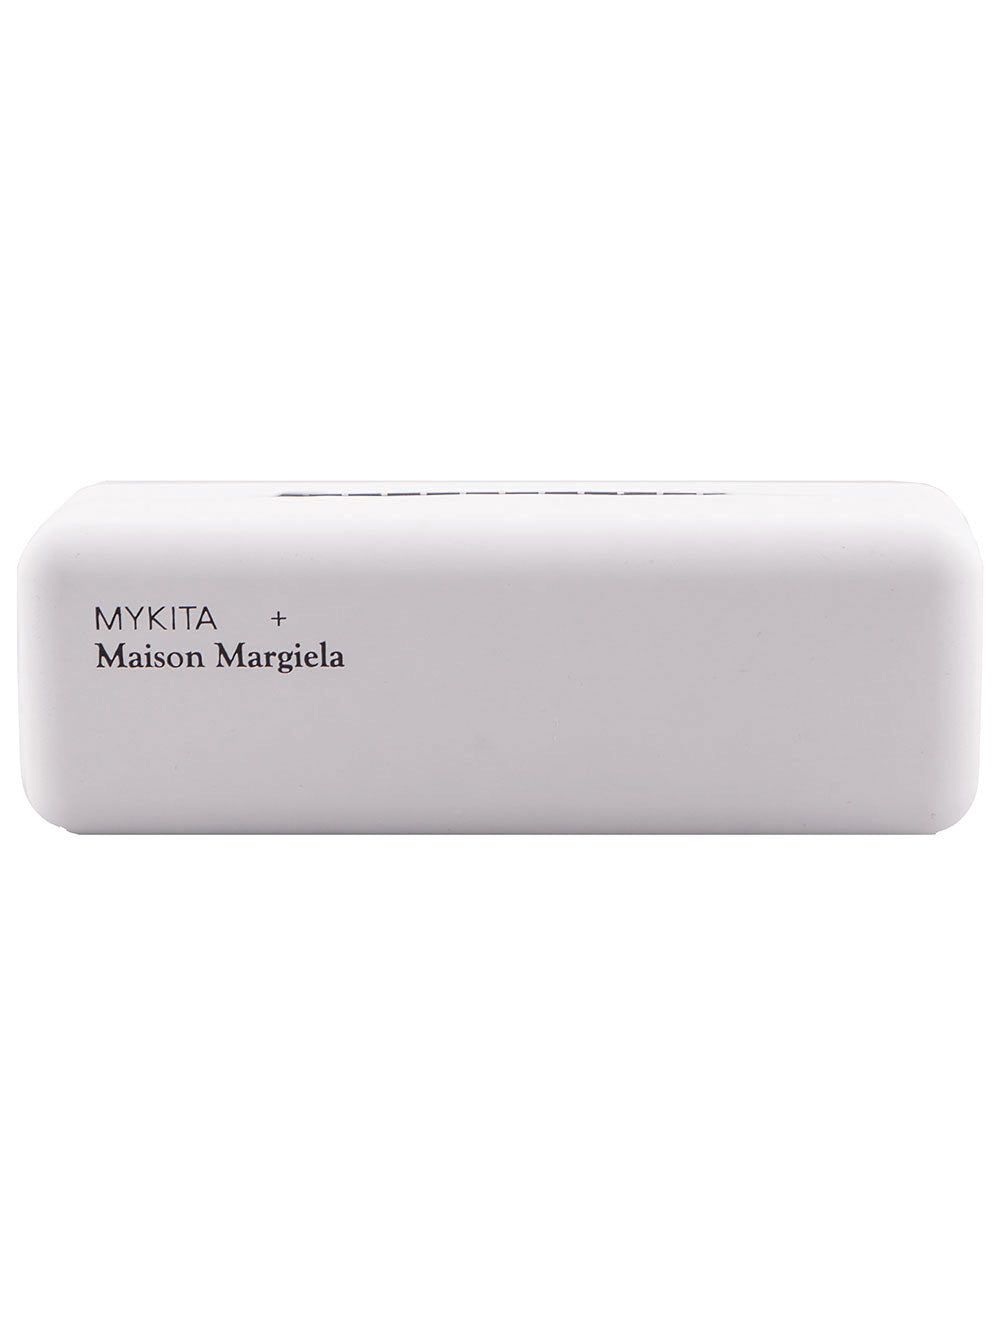 Mykita Margiela Stone Transfer Sunglasses Case